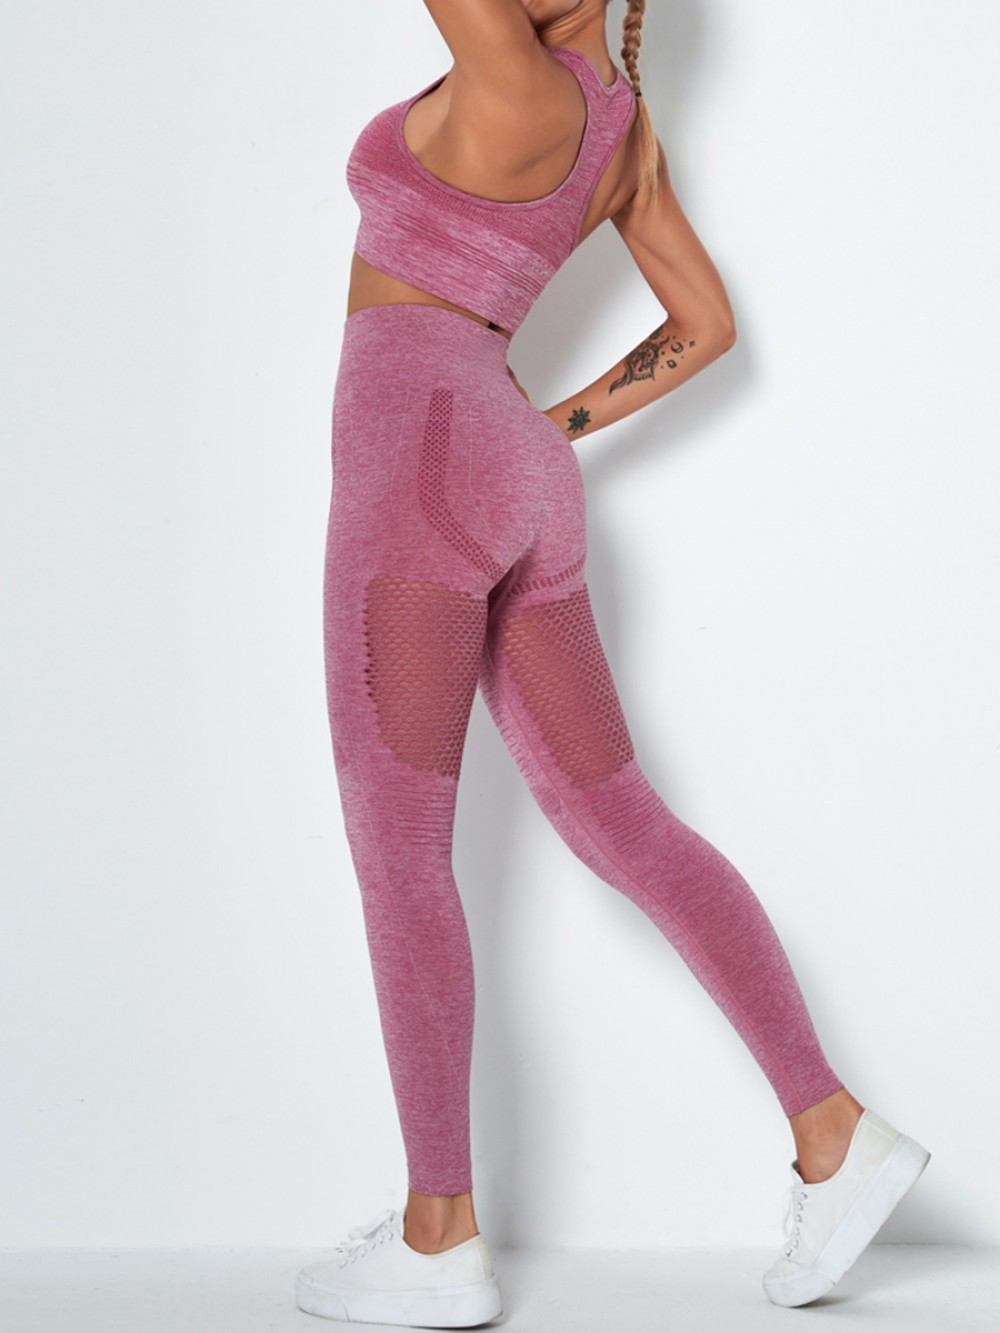 Wine Red Removable Cups Ankle-Length Yoga Suit Quality Assured